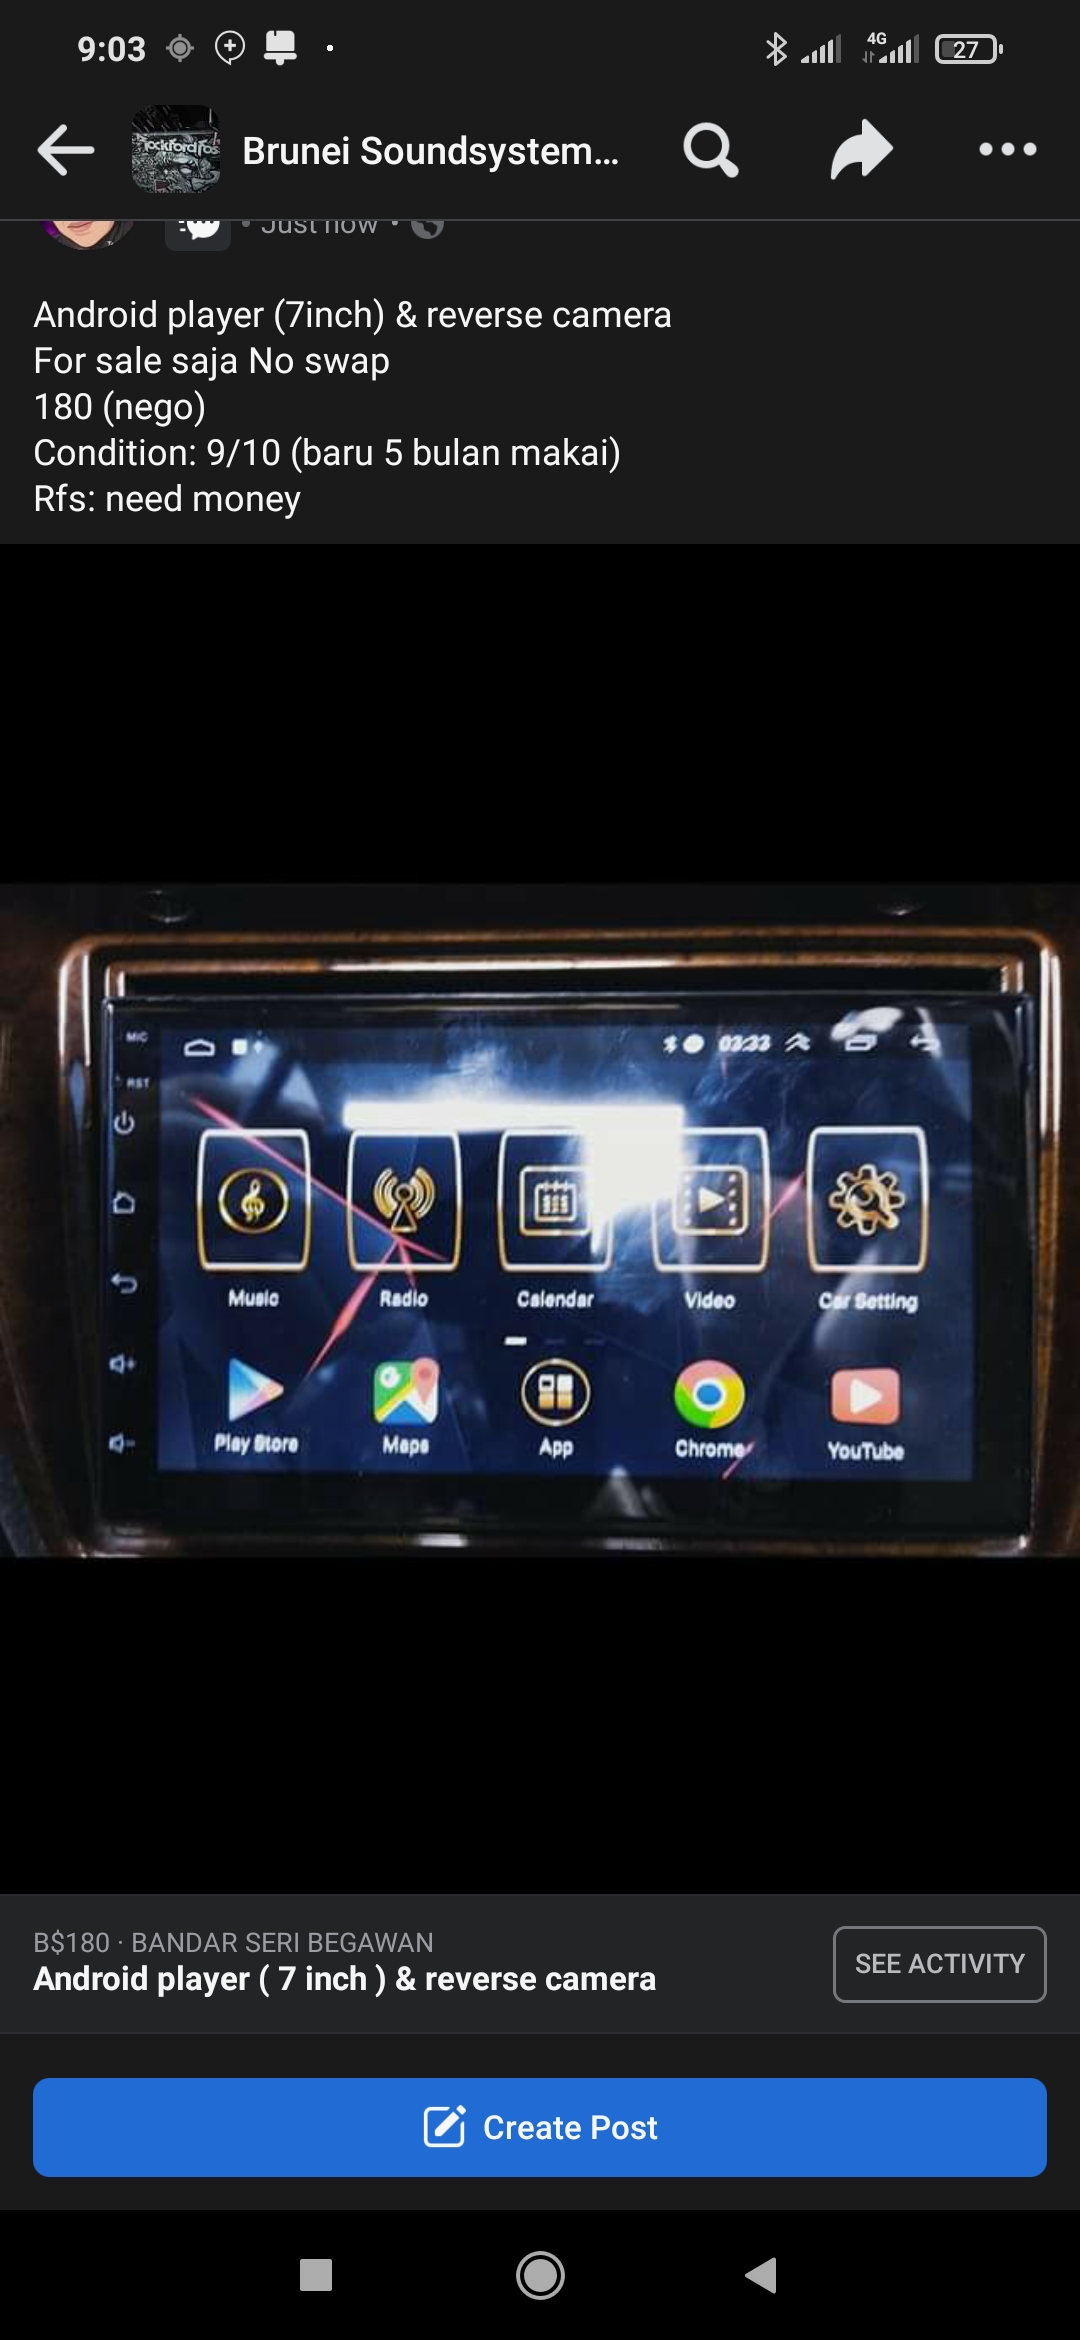 Android player (7 inch) & reverse camera